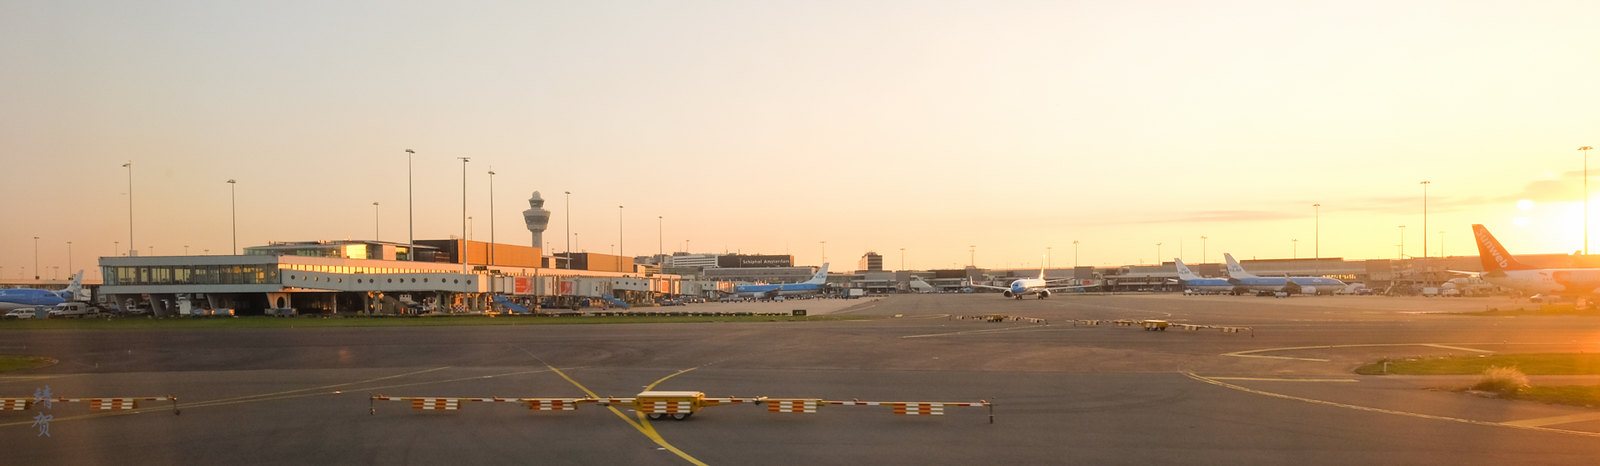 Sunset over Schiphol